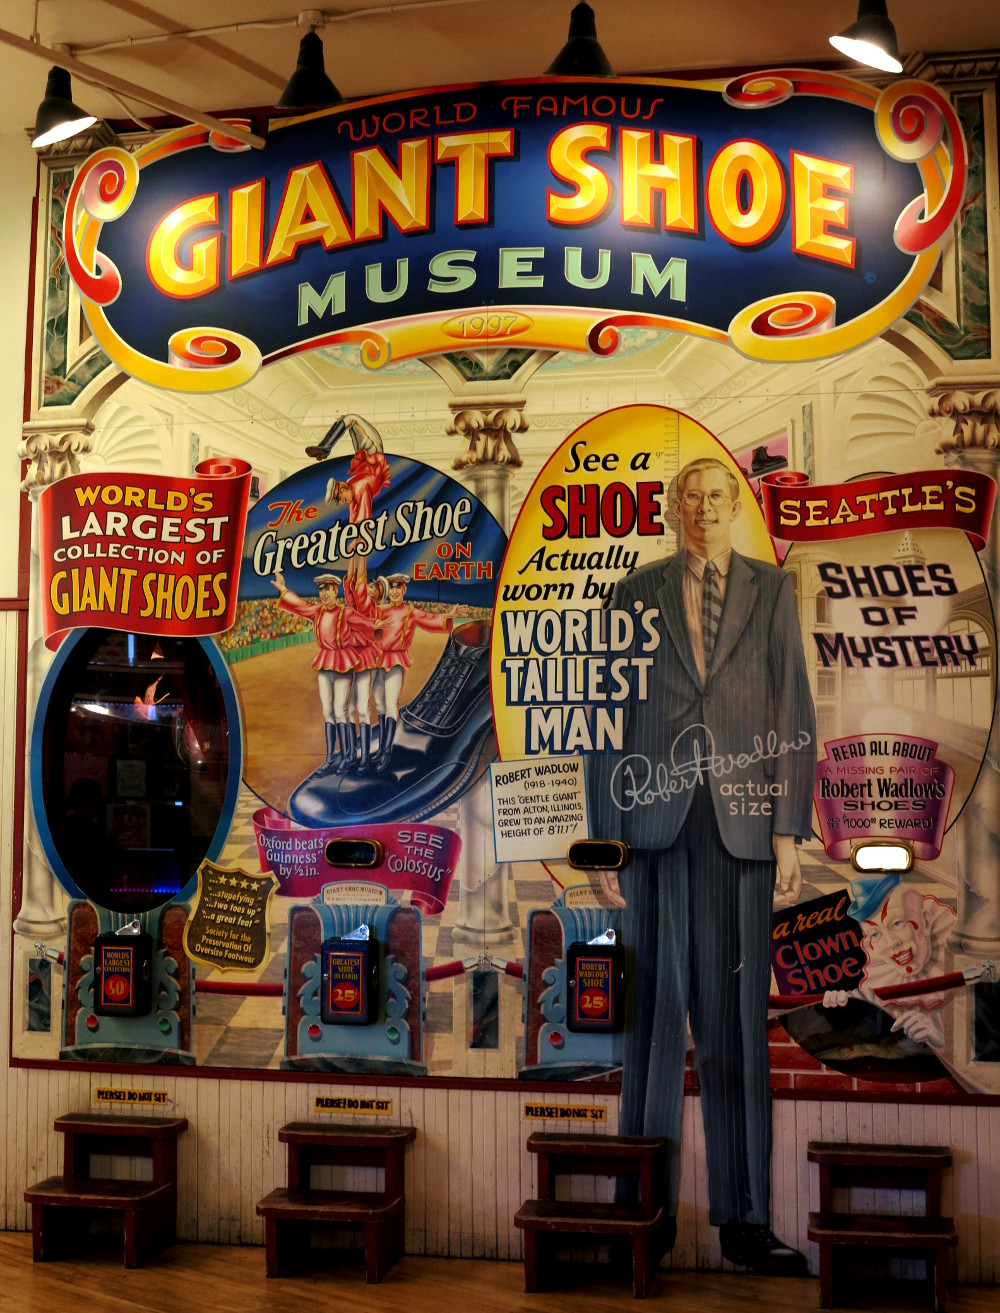 Giant shoe museum at Pike Place Market in Seattle Double-Barrelled Travel